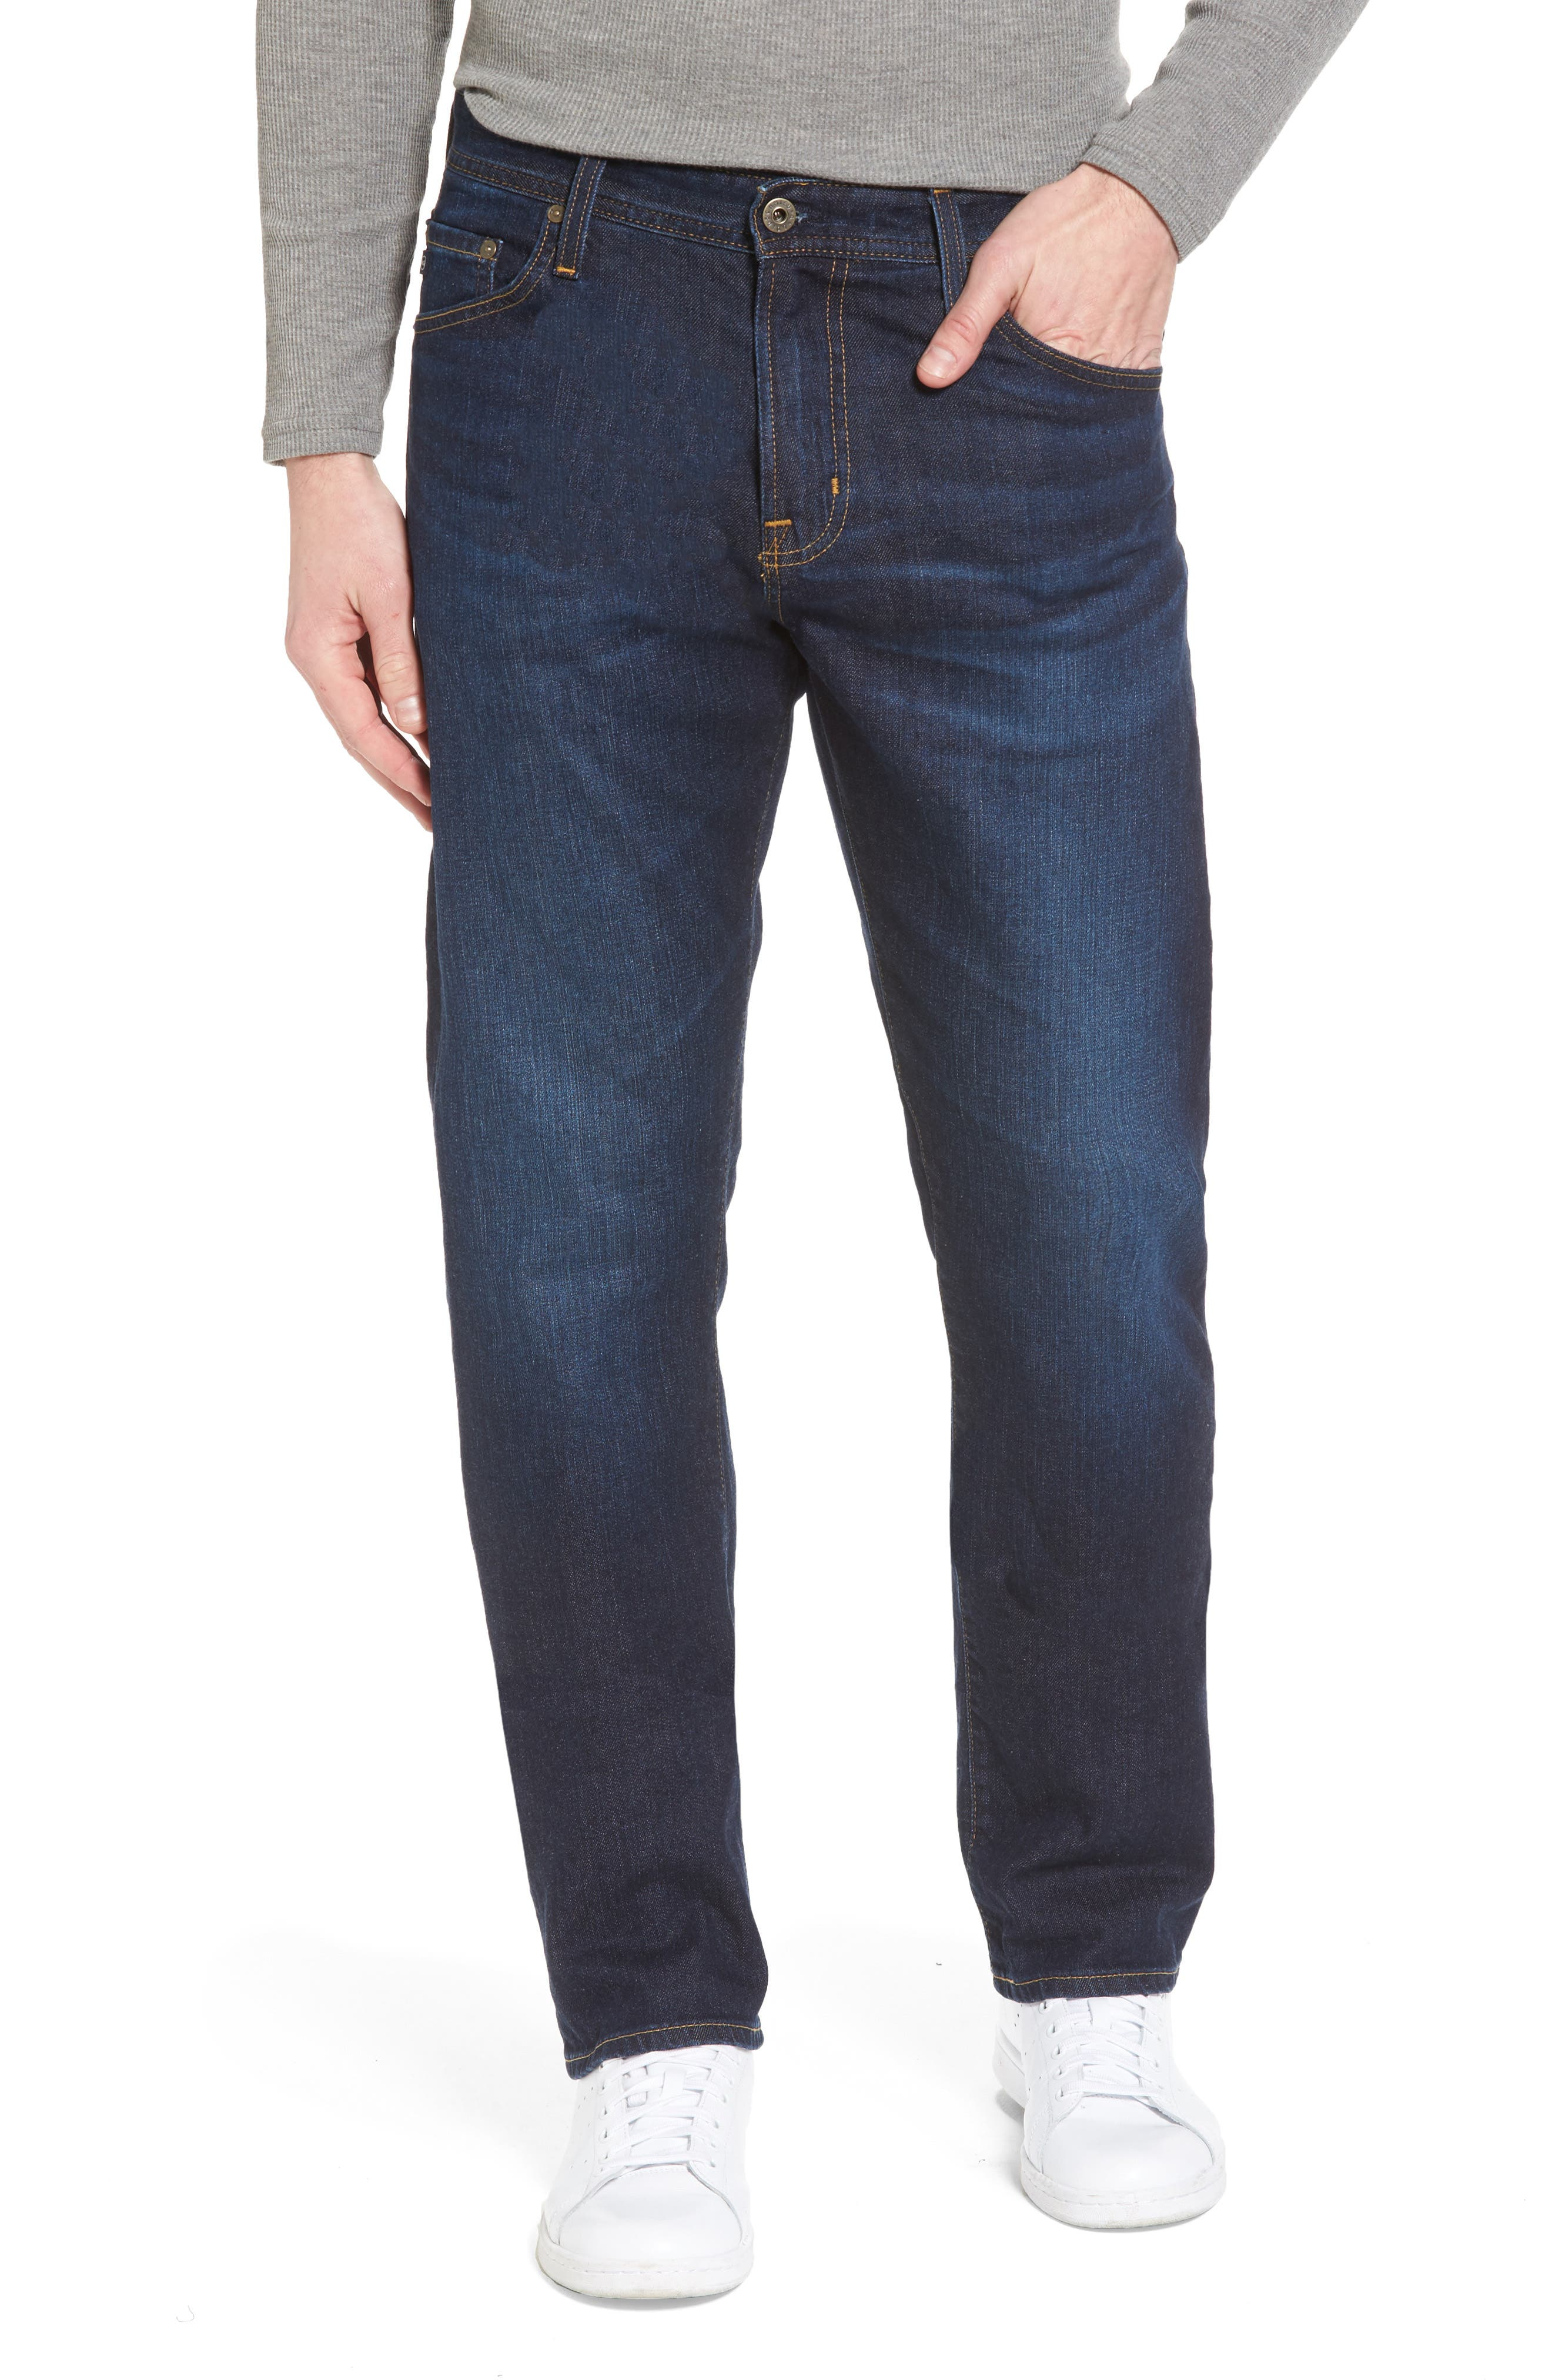 Ives Straight Fit Jeans,                         Main,                         color, 400